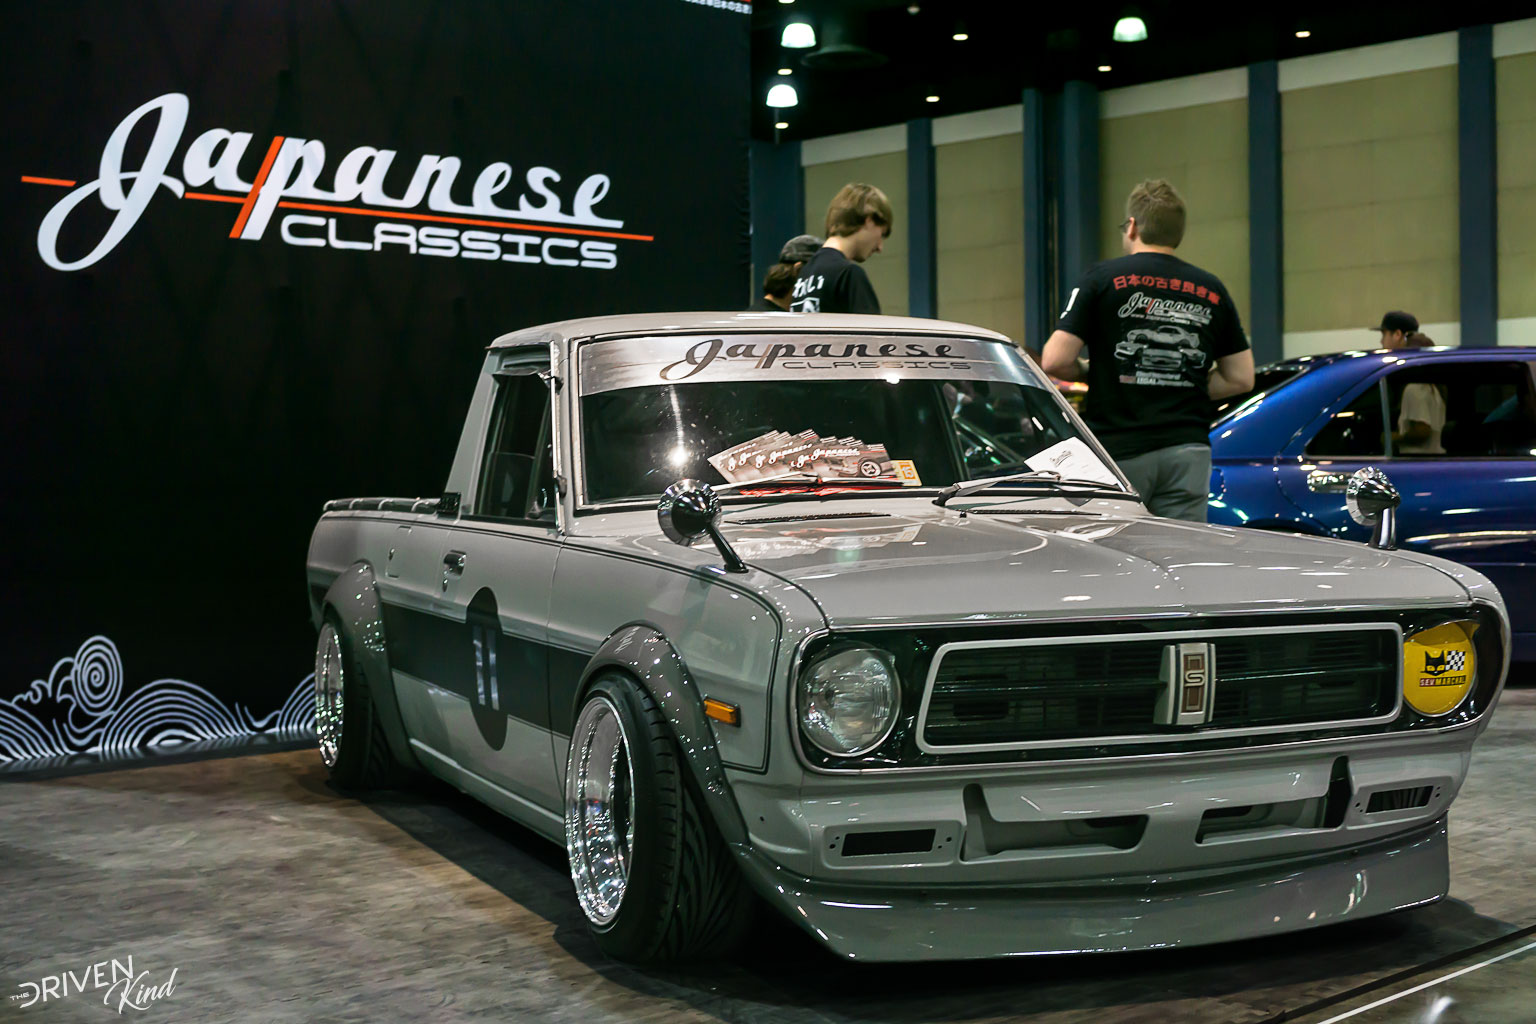 Datsun Pickup STANCENATION FLORIDA PALM BEACH CONVENTION CENTER 2017 Pt. 2 The Driven Kind Coverage